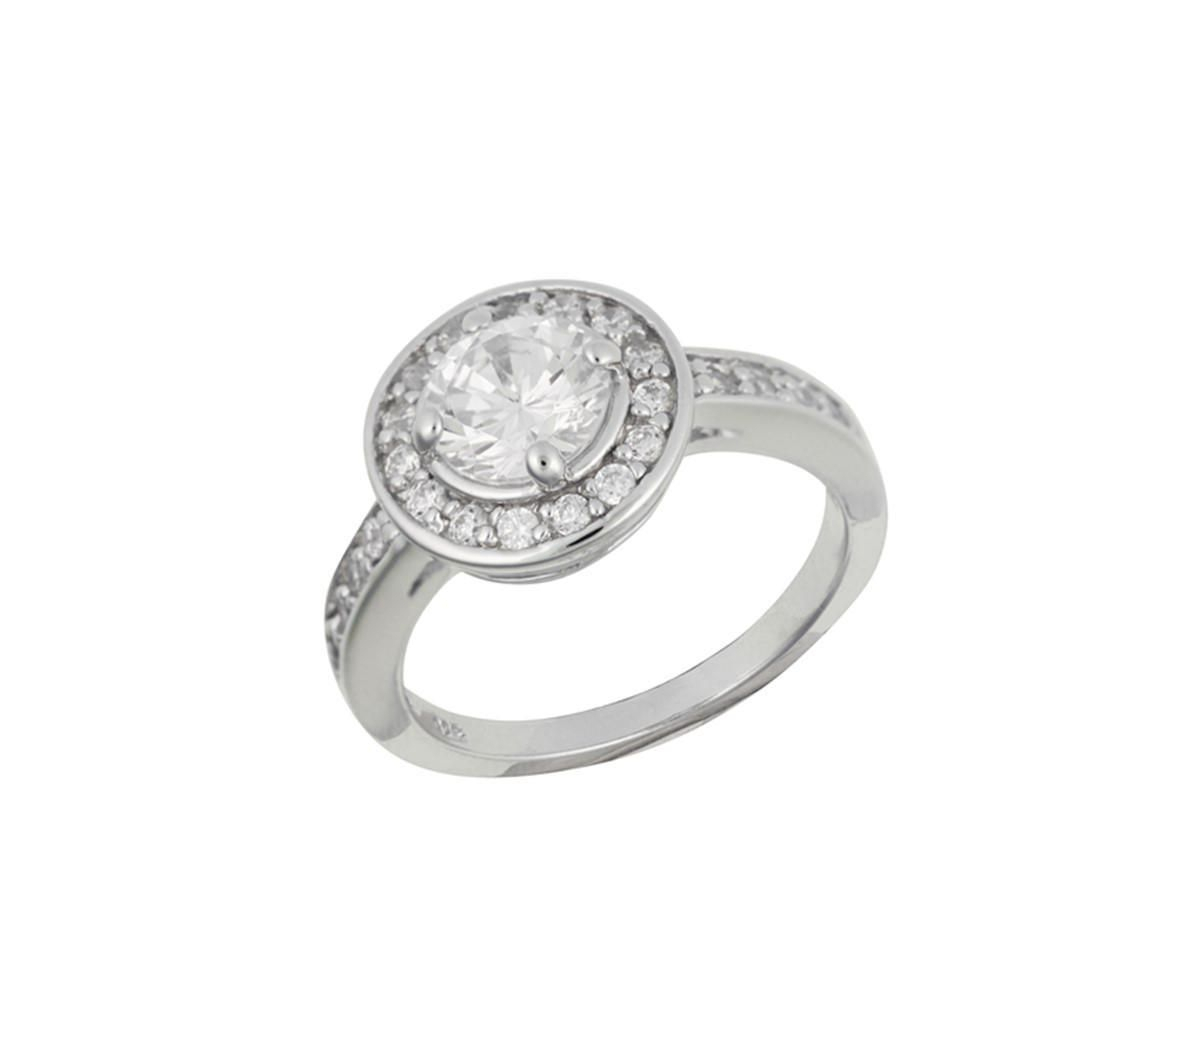 N/a Sterling Silver Round Cubic Zirconia Halo Ring – Size 7 In Most Current Round Sparkle Halo Rings (View 12 of 25)